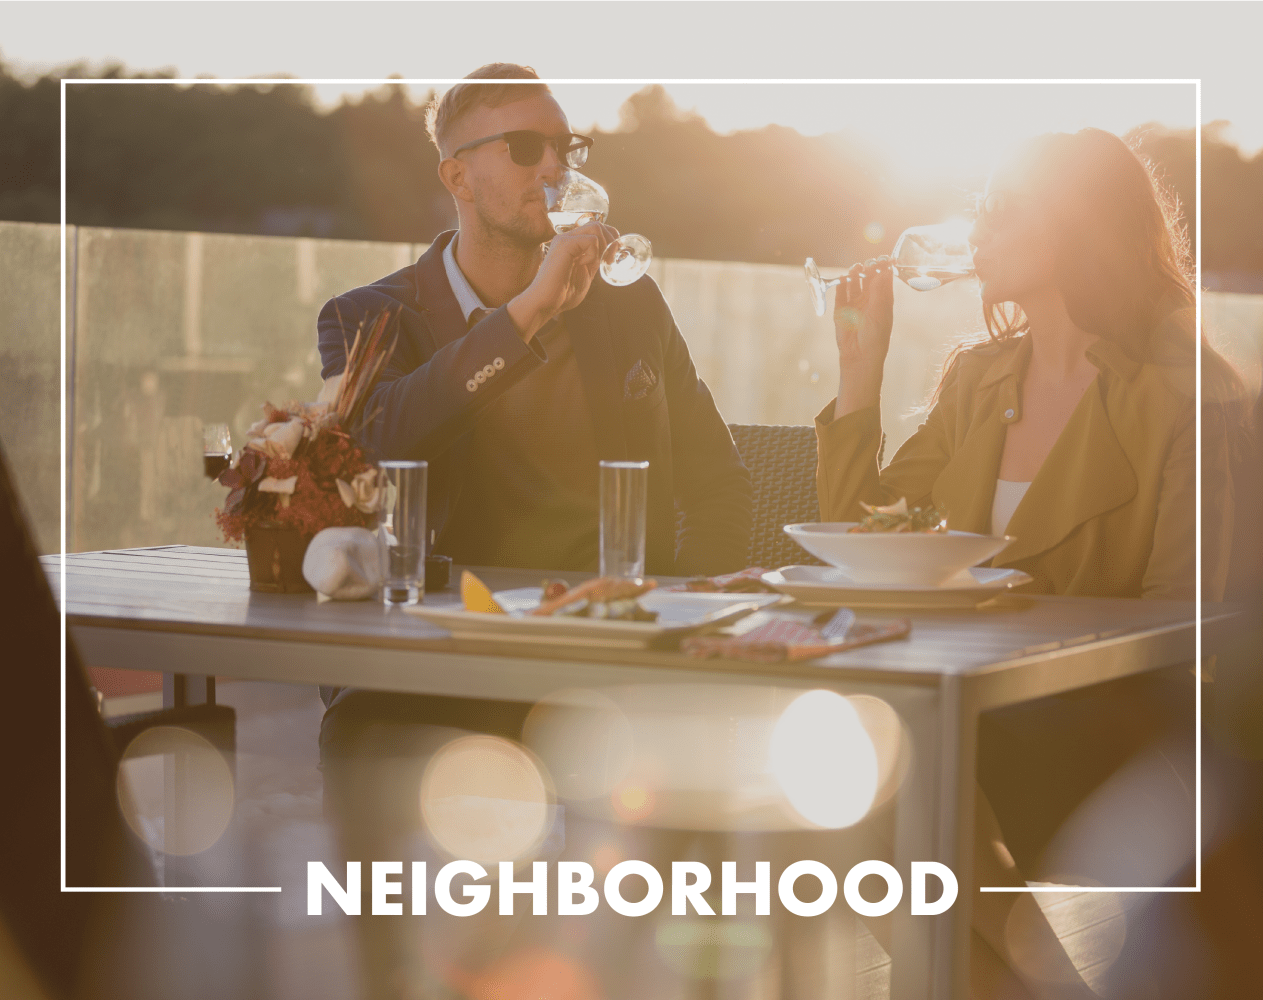 View the neighborhood information near Barcelona Apartments in Tulsa, Oklahoma